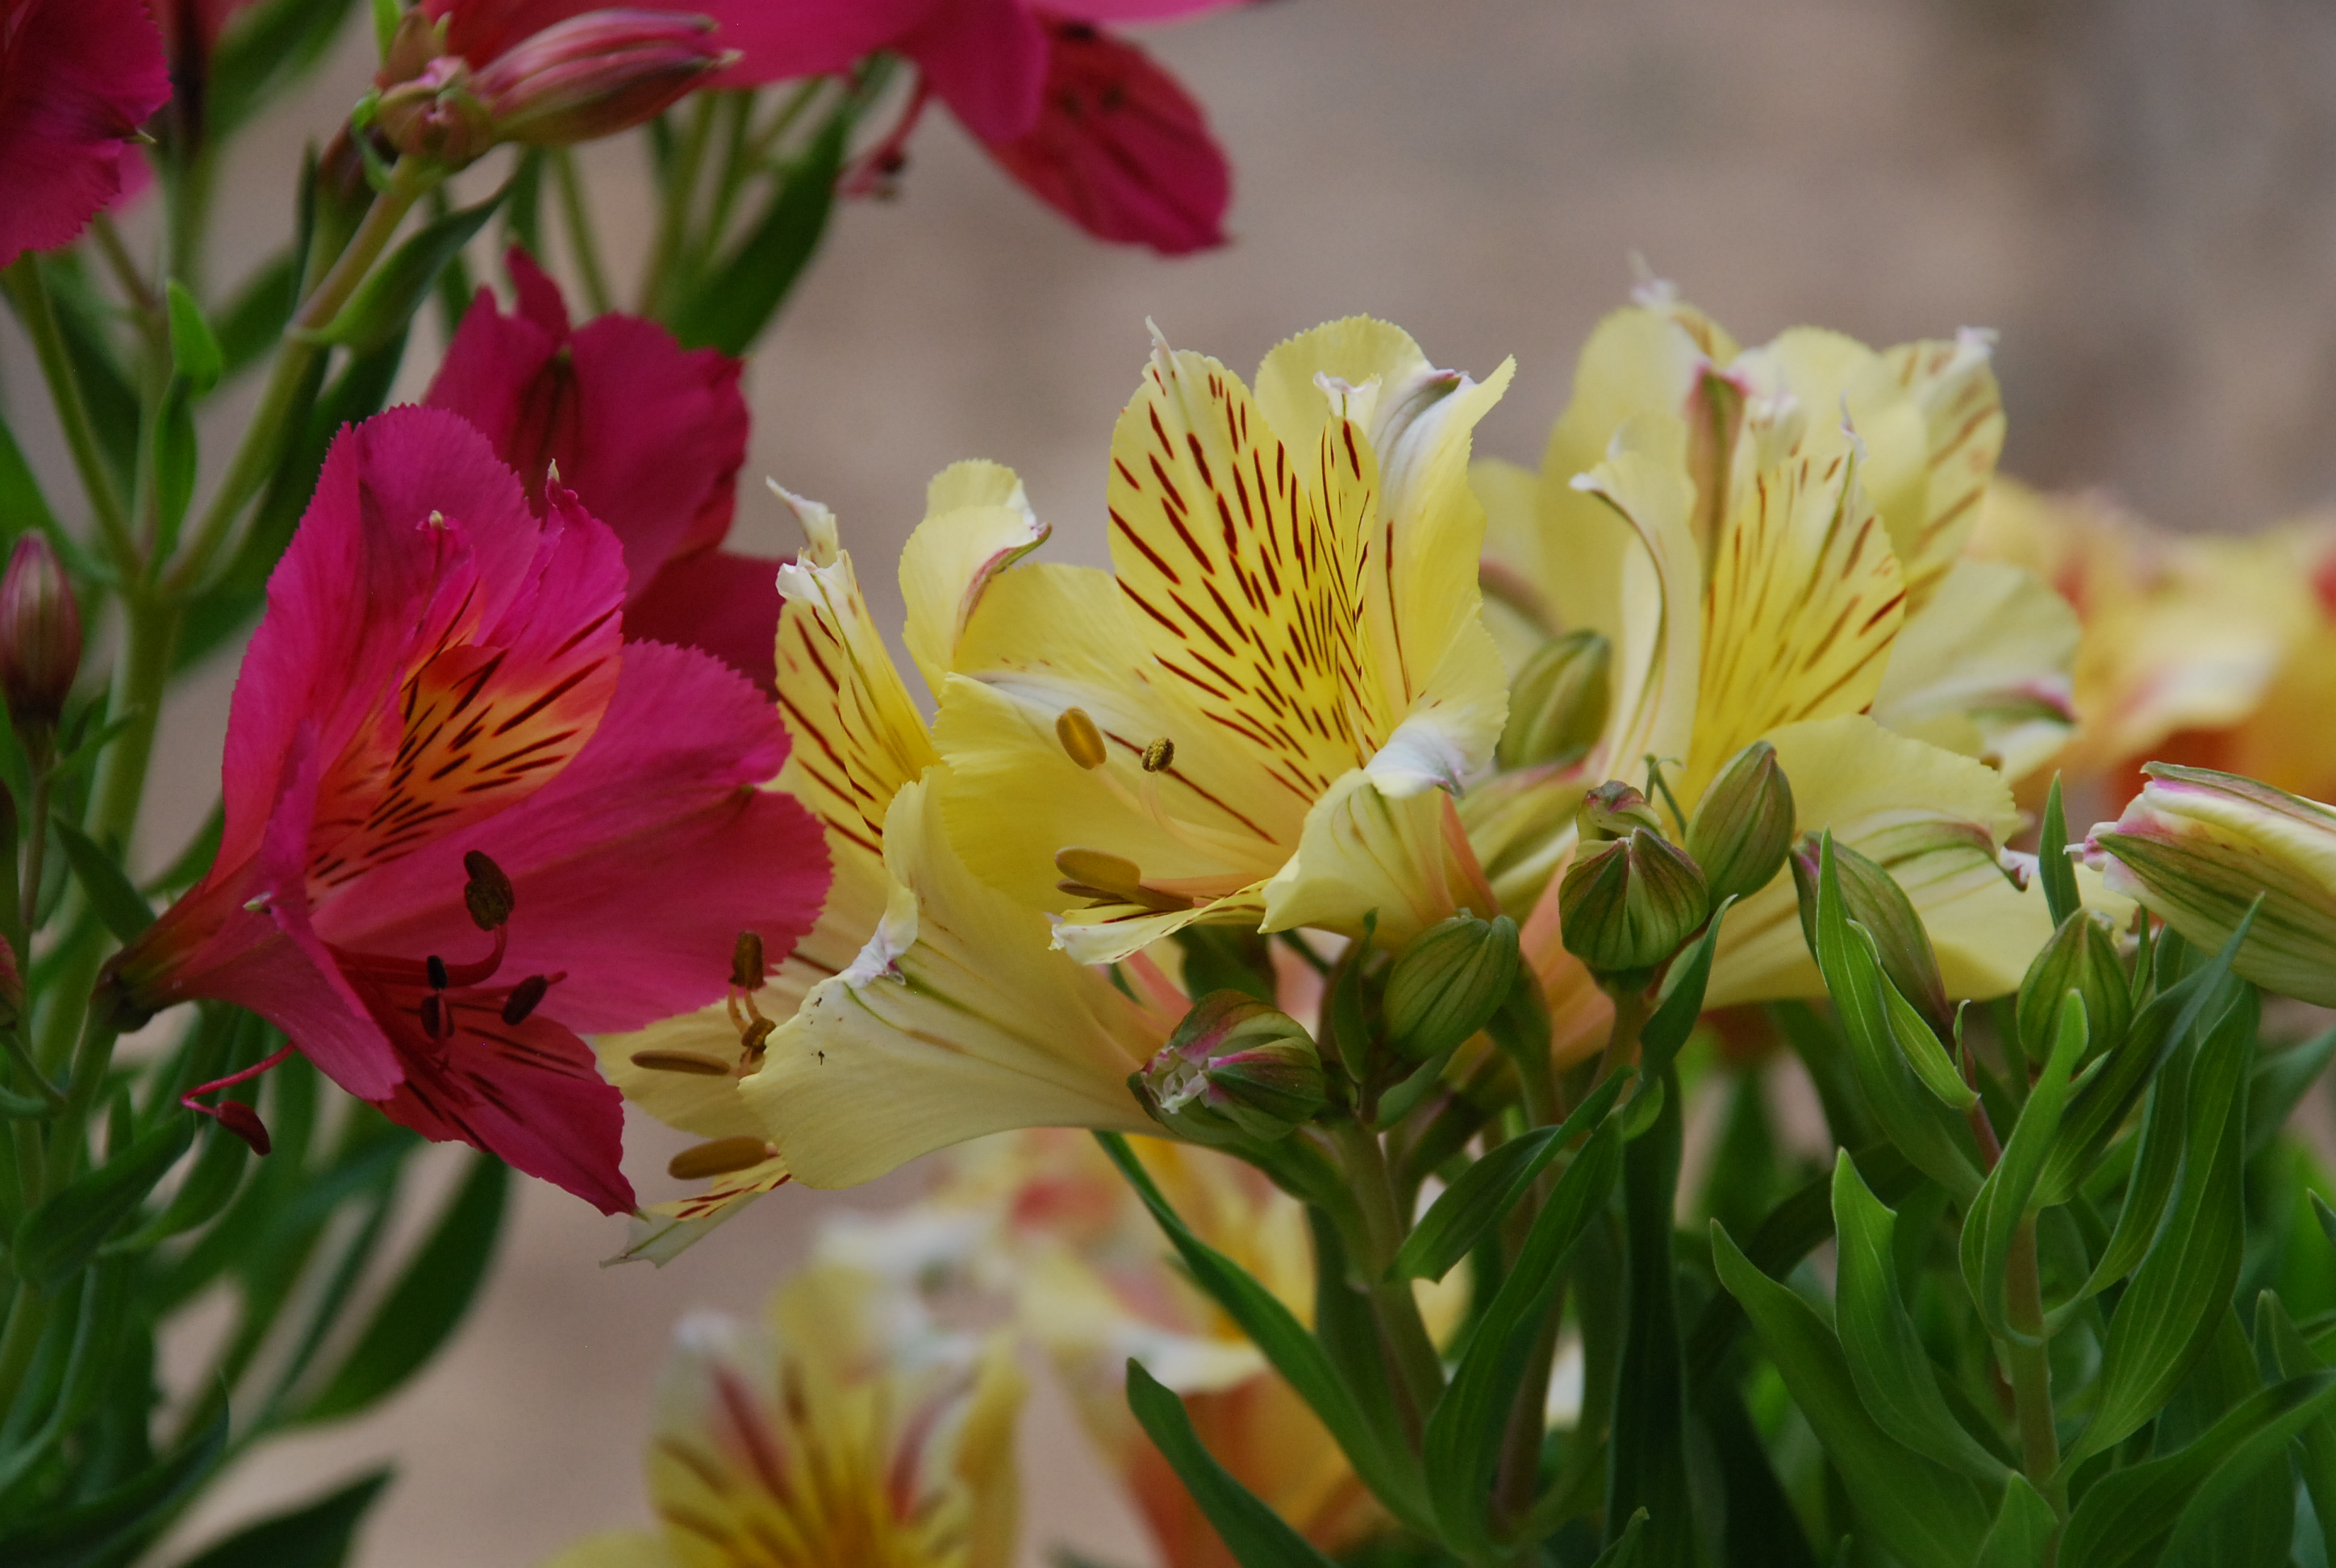 Peruvian lilies a gift which keeps on giving what grows there peruvian lilies alstroemeria izmirmasajfo Gallery